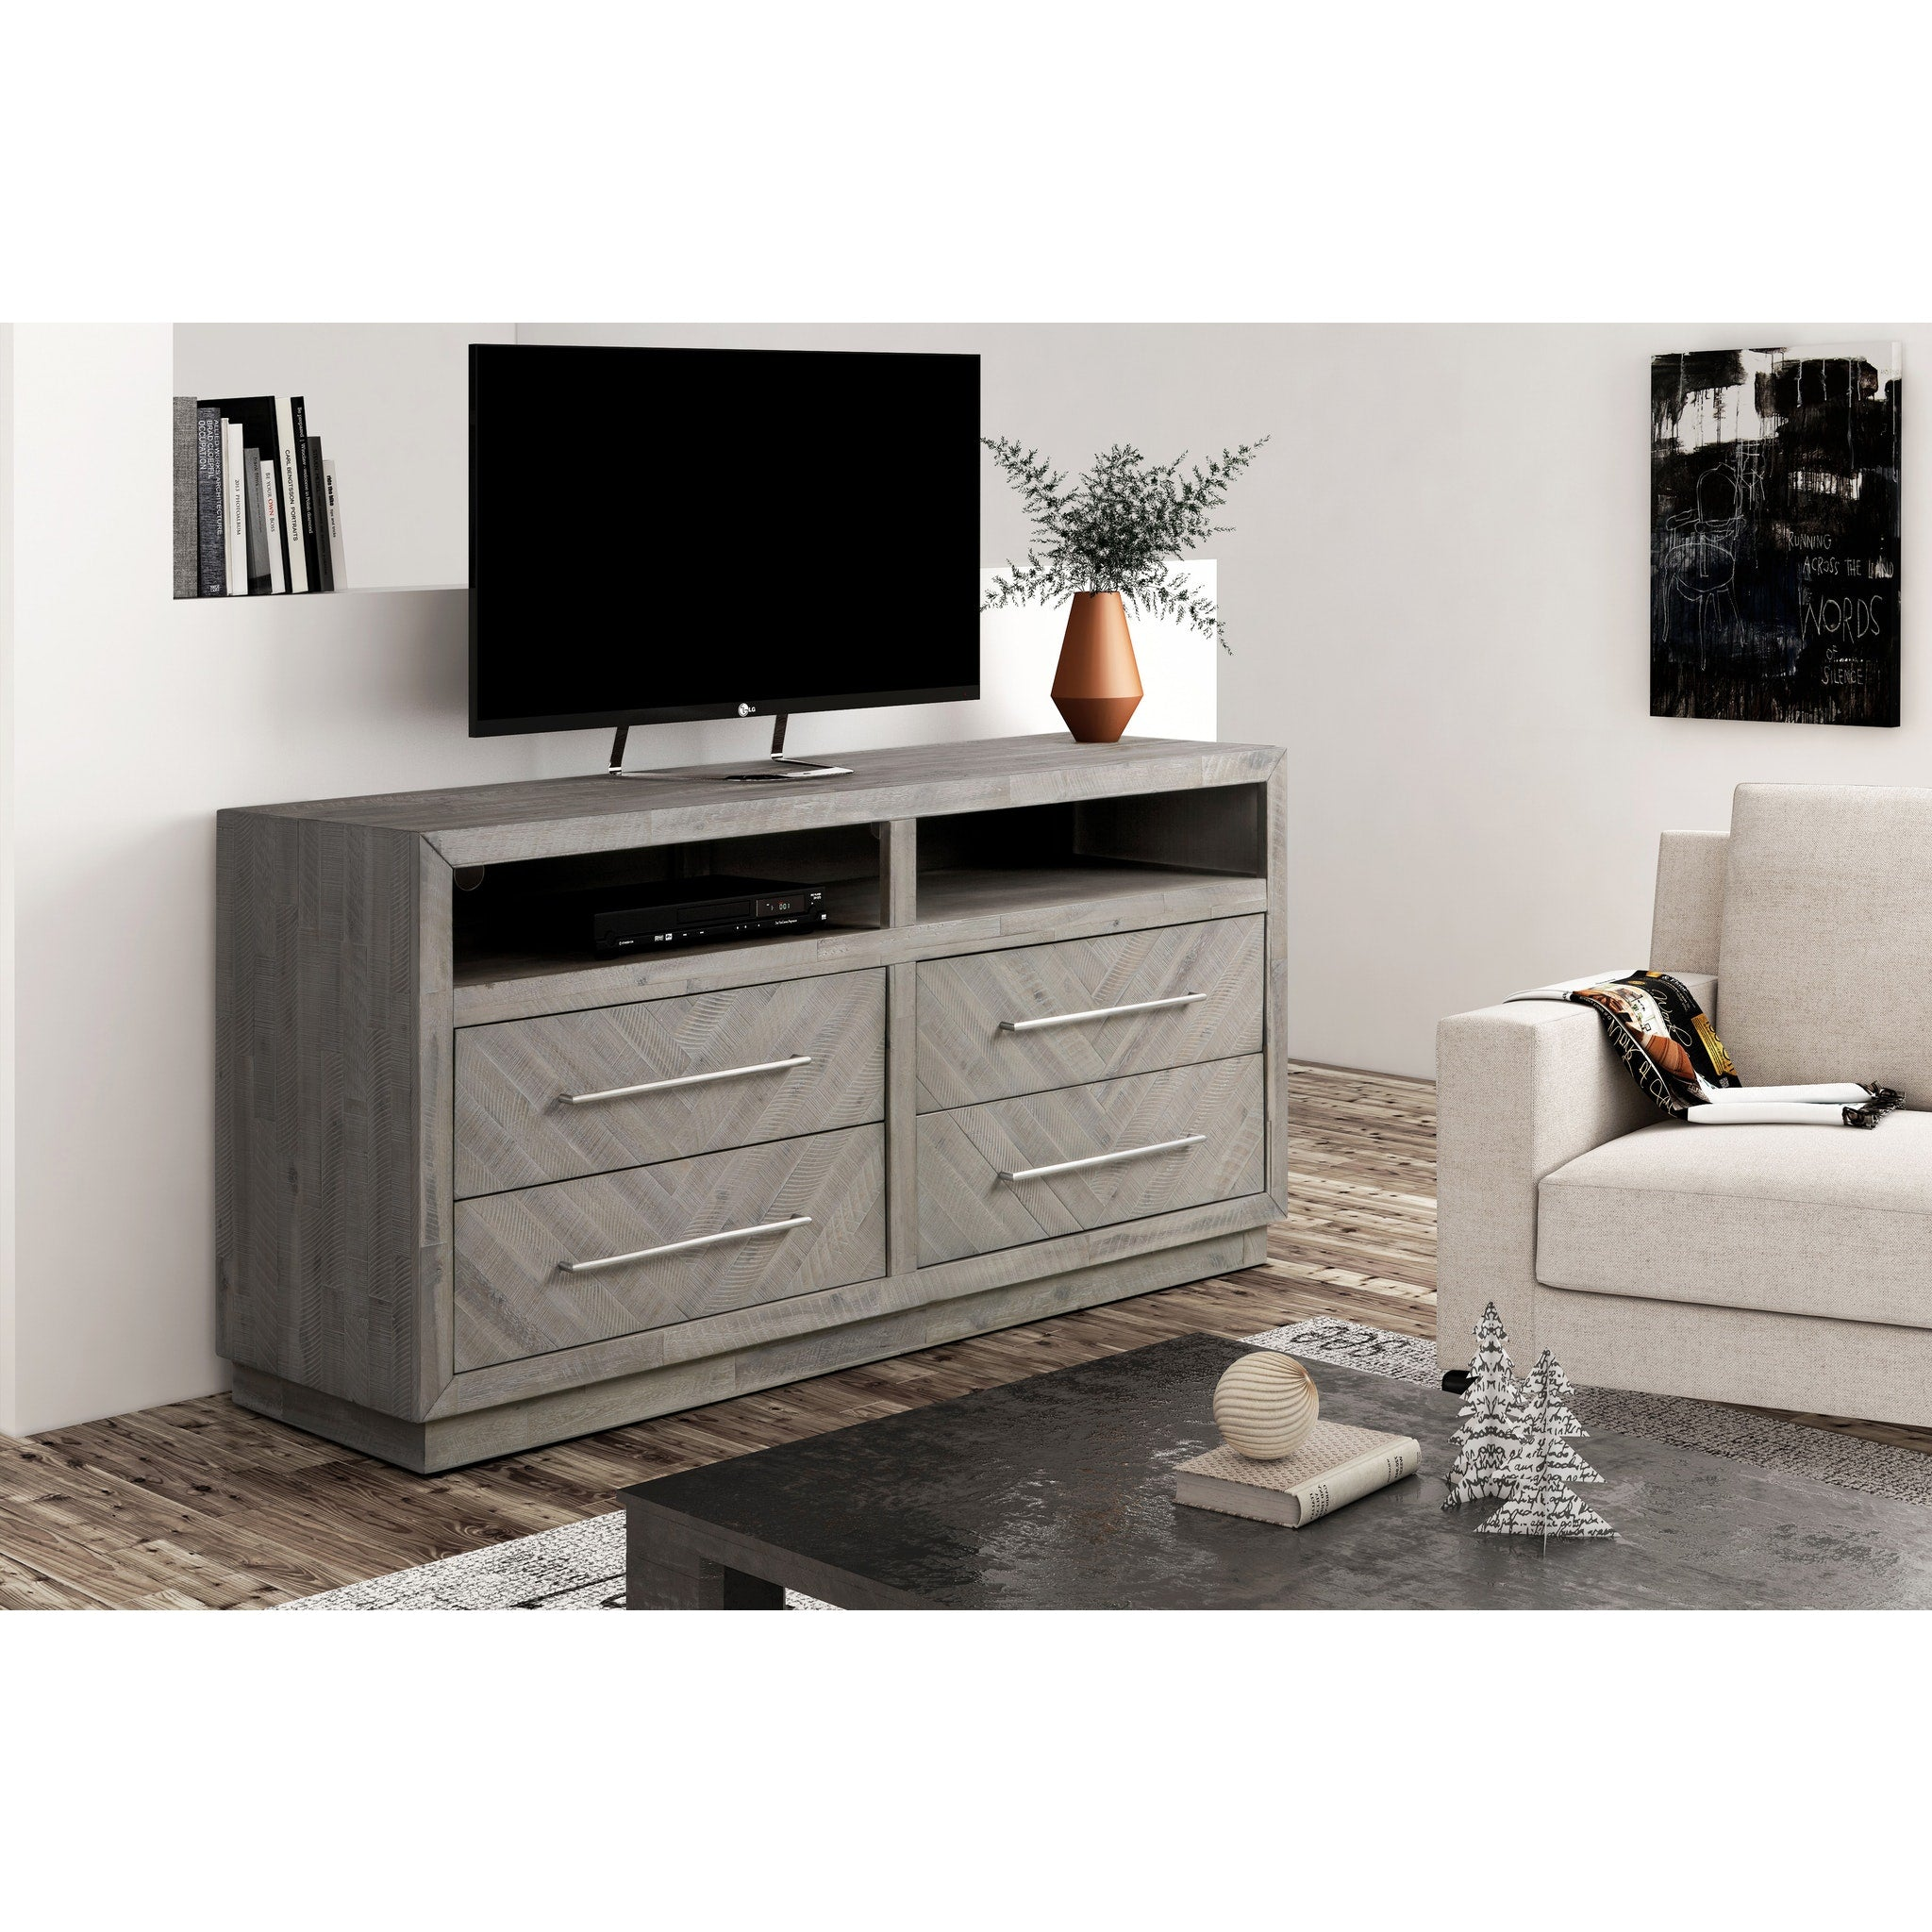 "Alexandra Solid Wood 64"" Media Console in Rustic Latte"